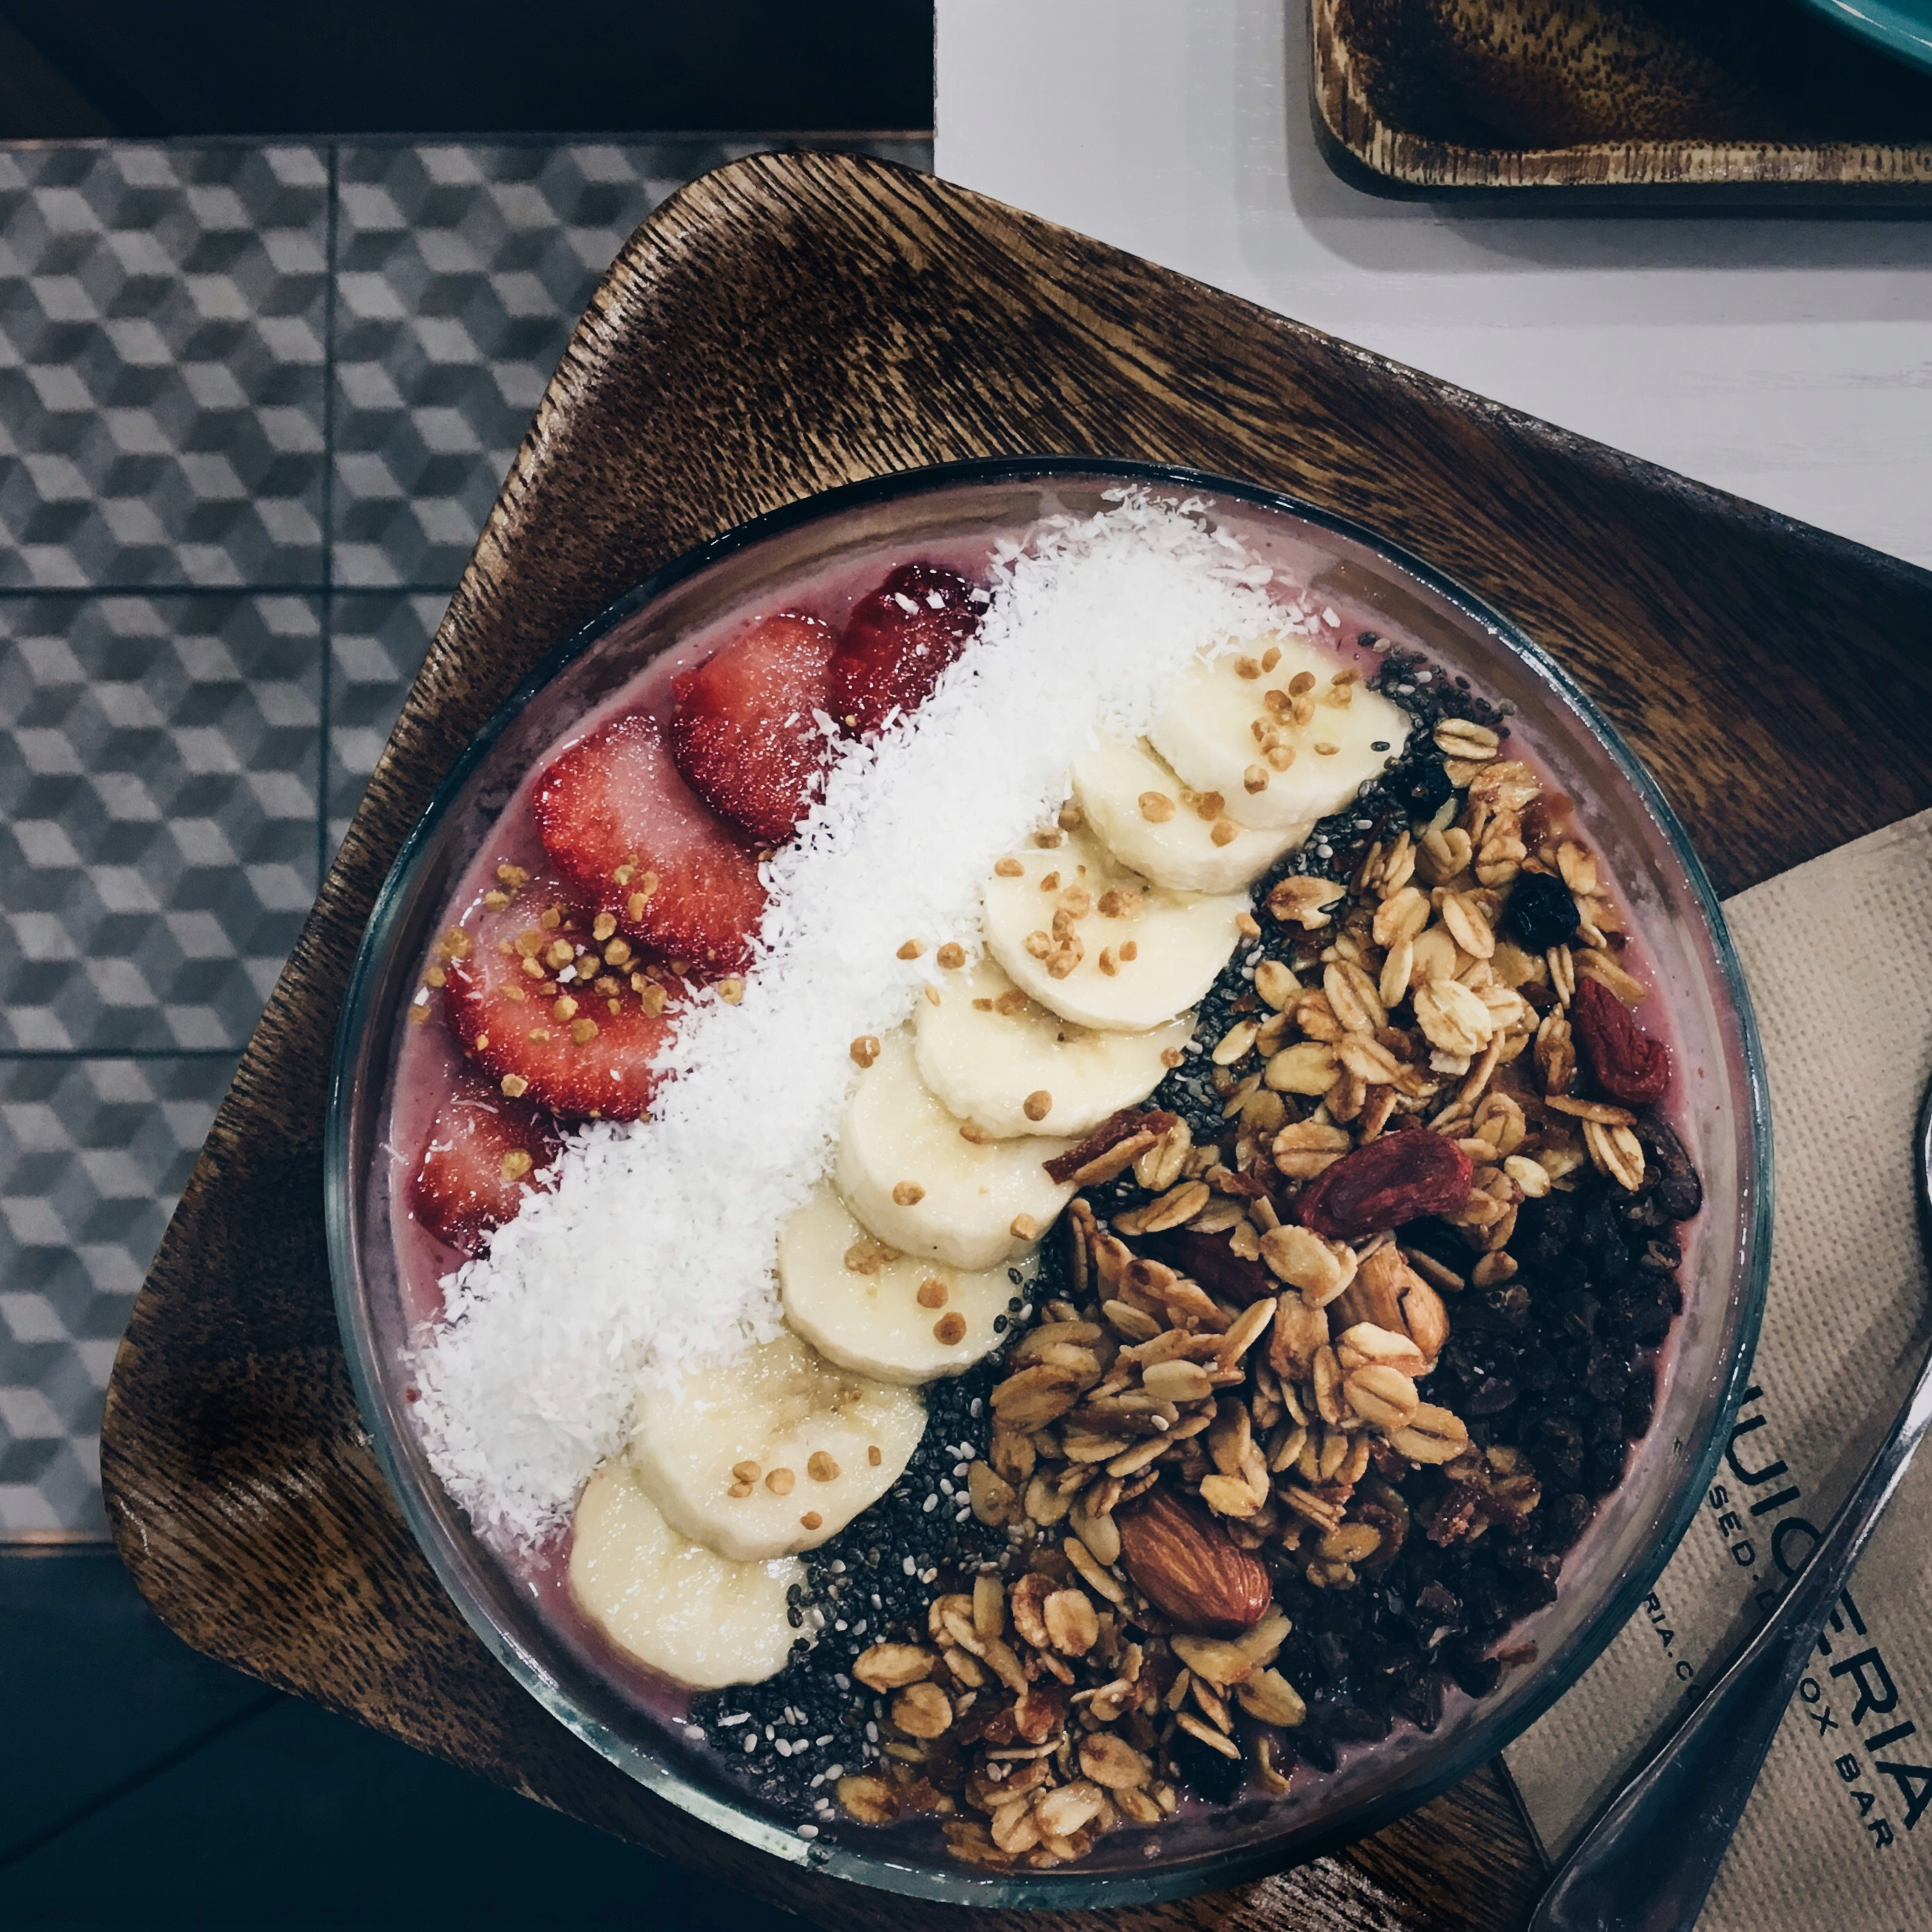 Smoothie bowl made by Goodness Greens Cafe at TTDI Kuala Lumpur